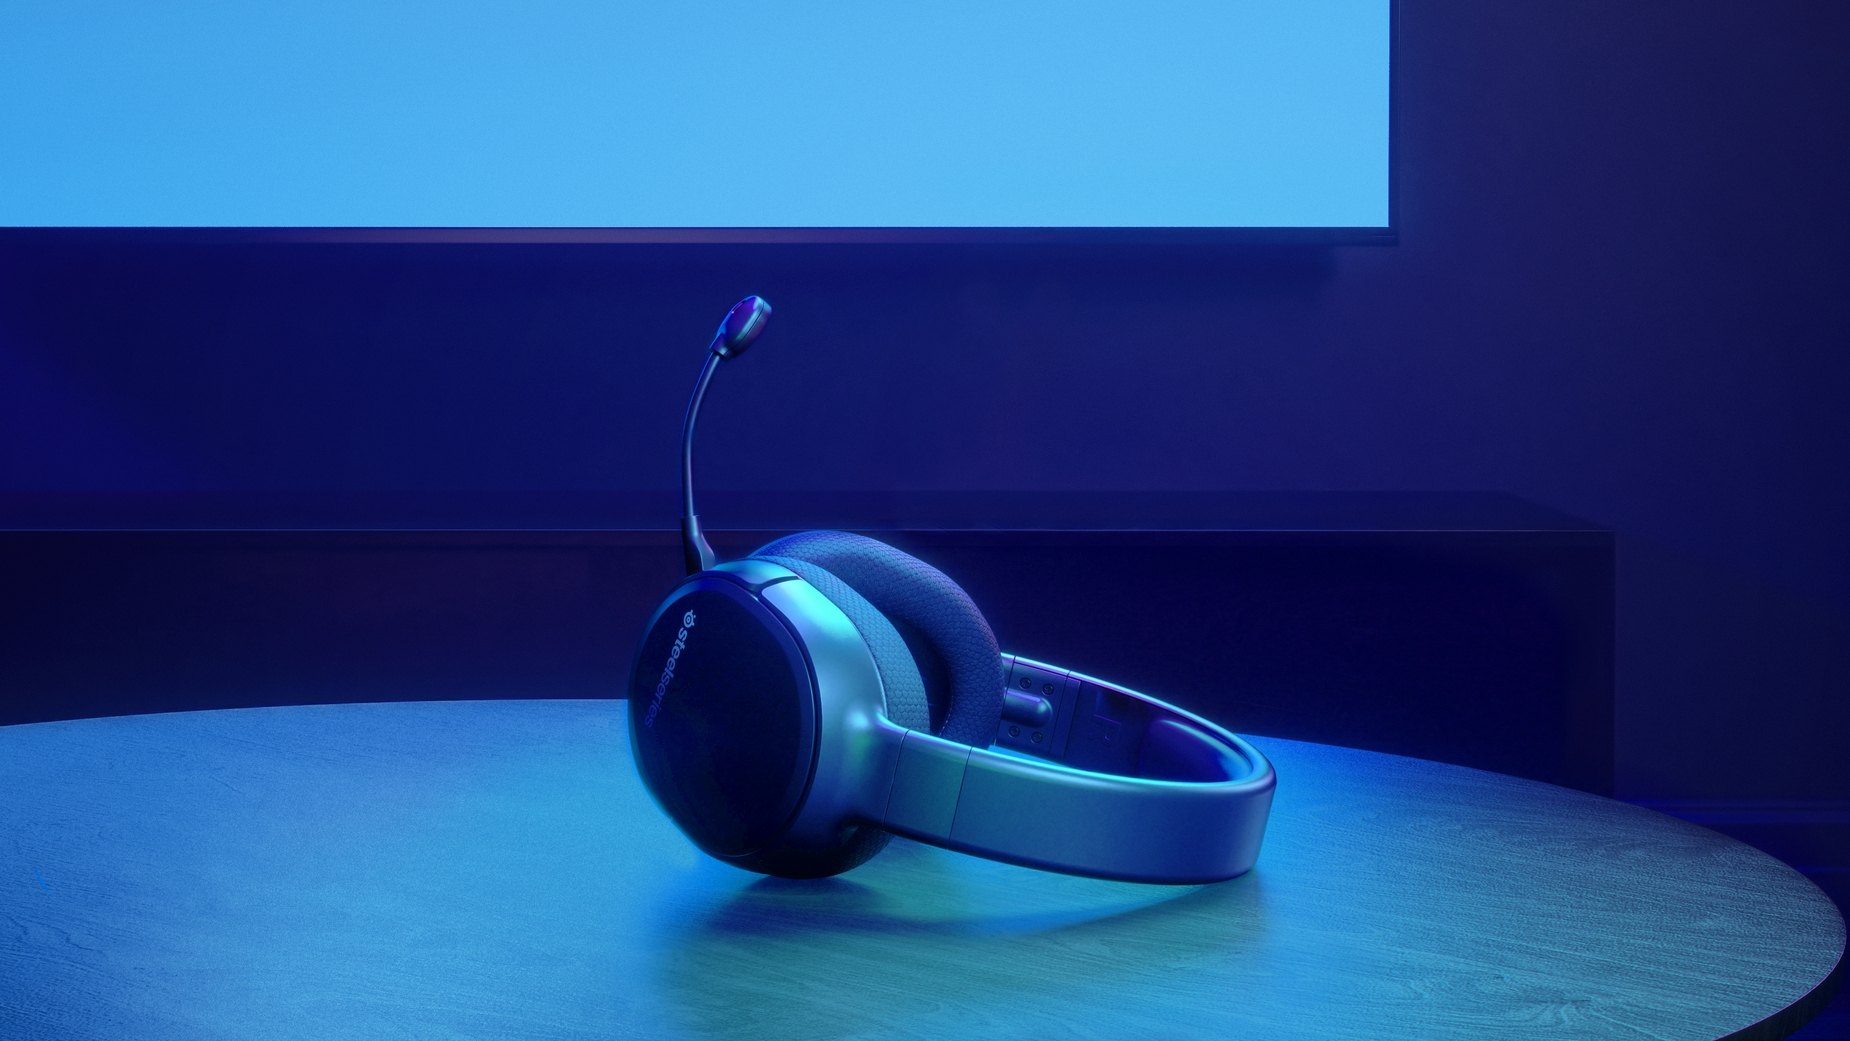 Arctis 1 Wireless for PS4 gaming headset on table with a Playstation controller and a PS4 in the background.